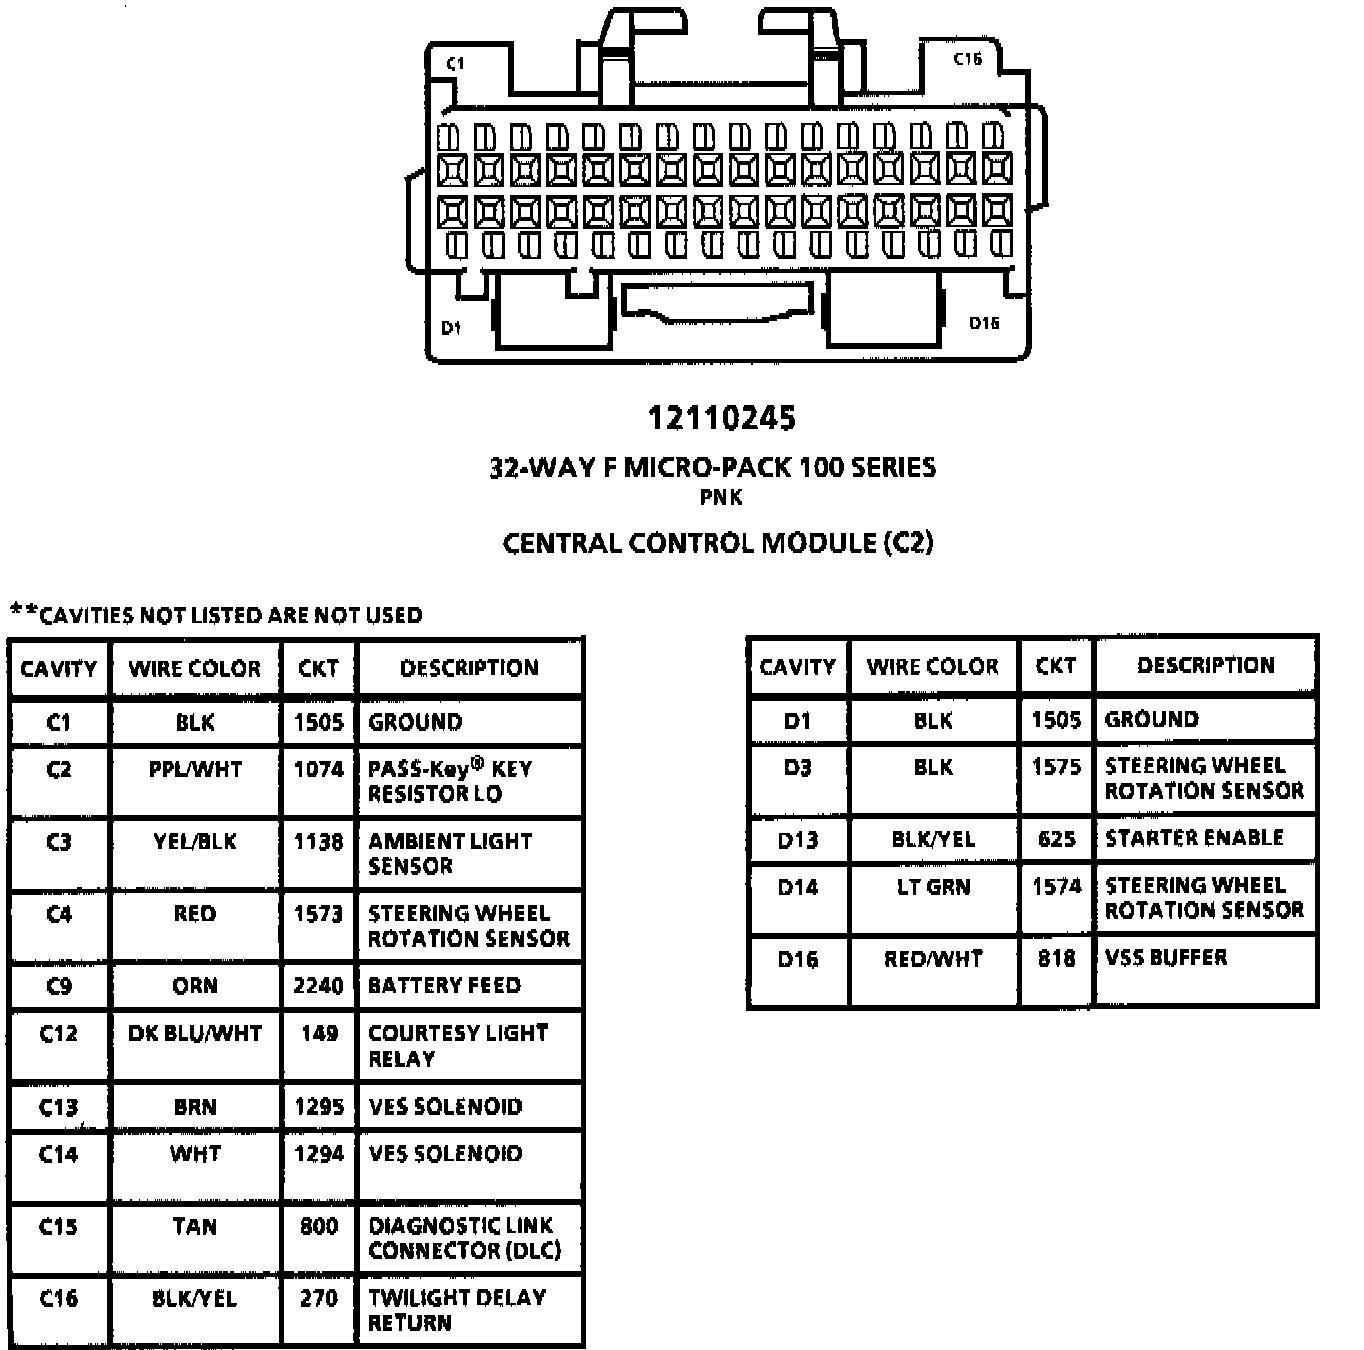 bobcat 14 pin connector wiring diagram bobcat discover your wiring diagram for the tdm module on my 1993 cadillac fleetwood